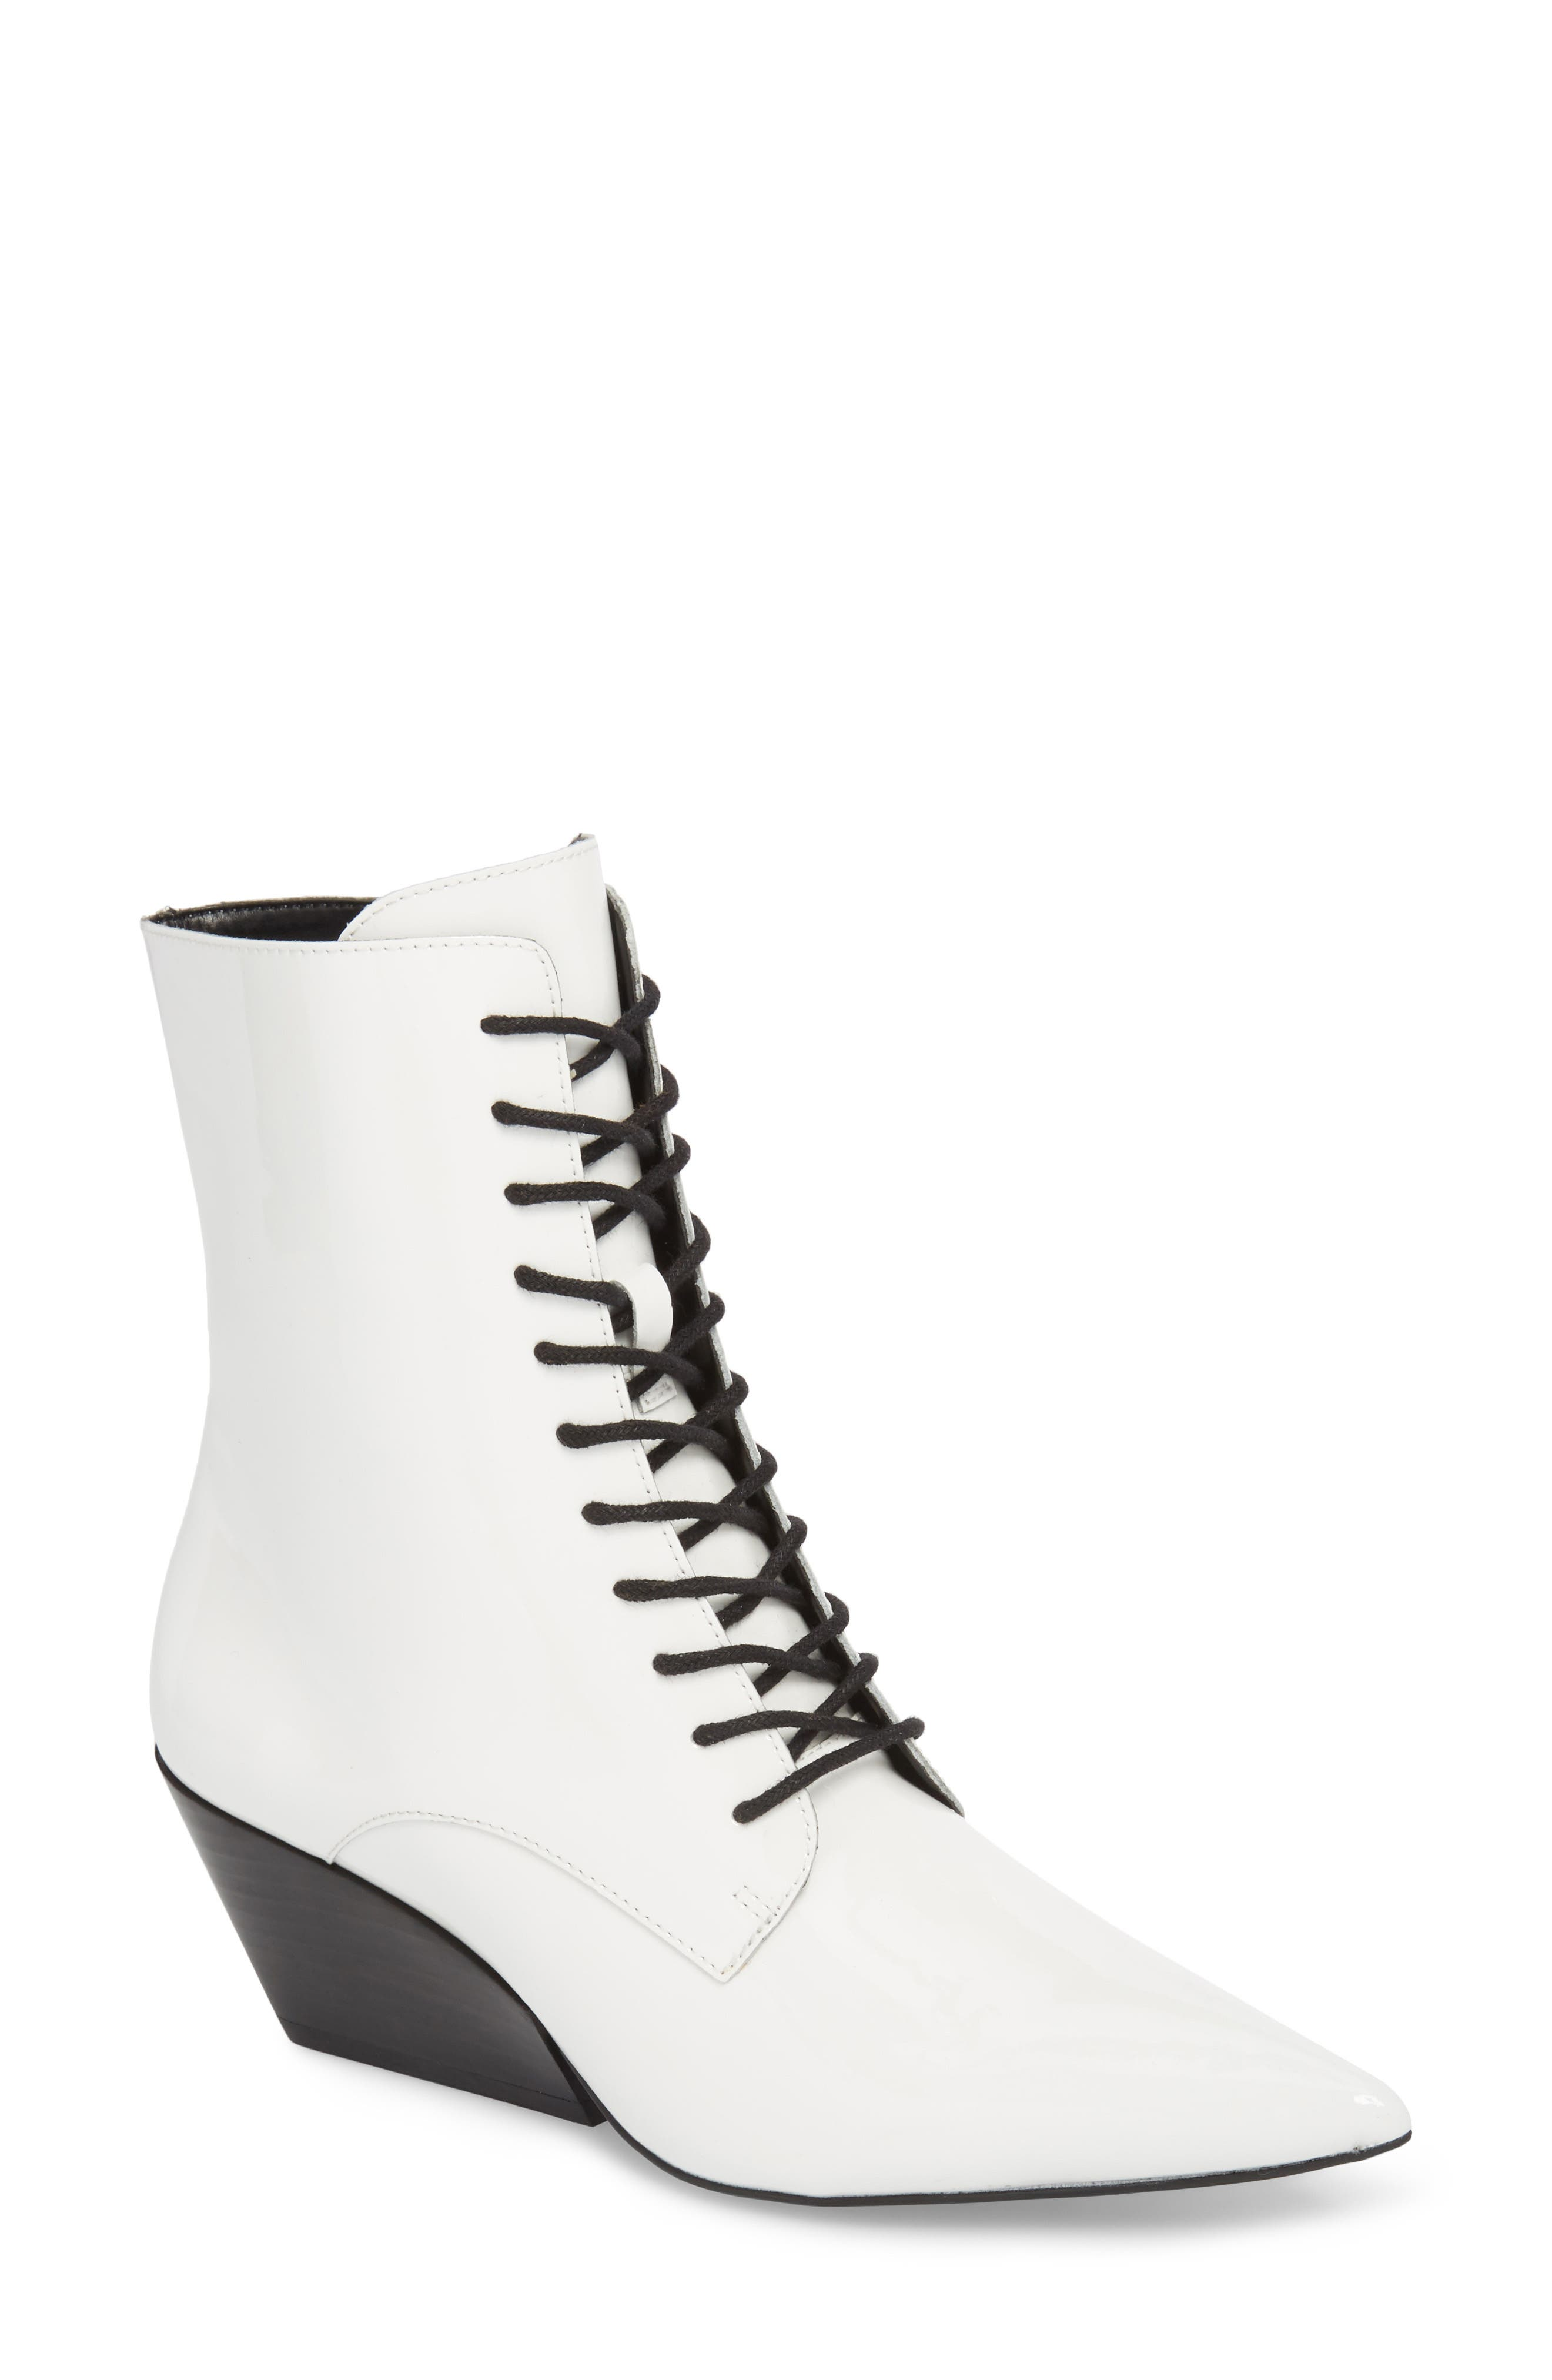 Faith Pointy Toe Laced Bootie,                         Main,                         color, White Patent